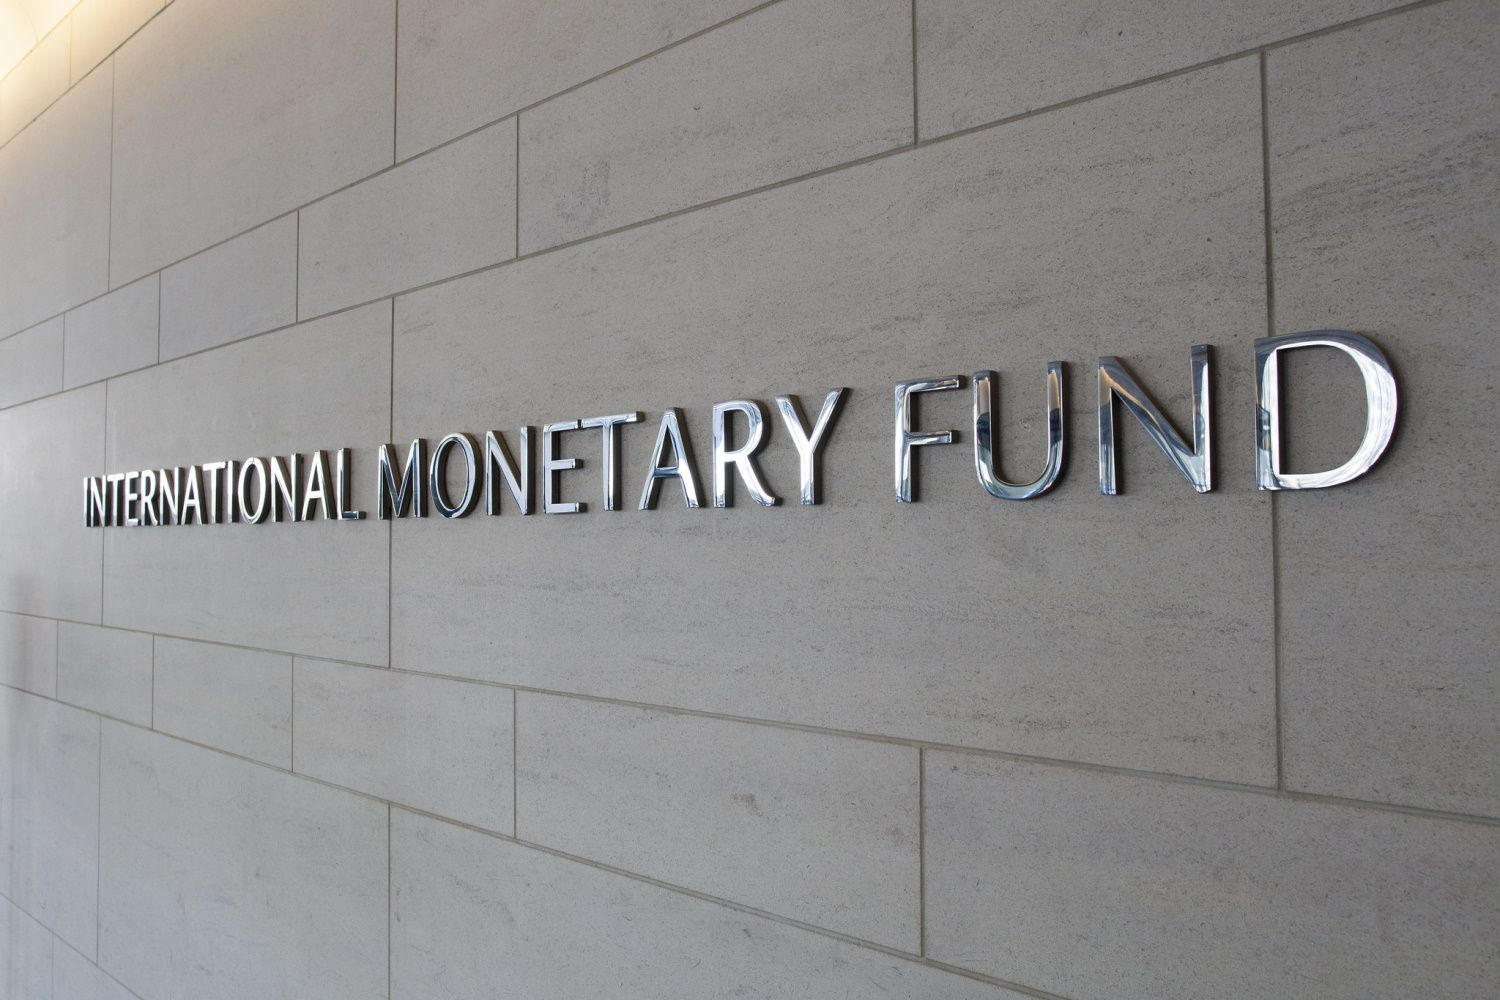 IMF Report Views 'Cryptoization' as Threat to Global Economy